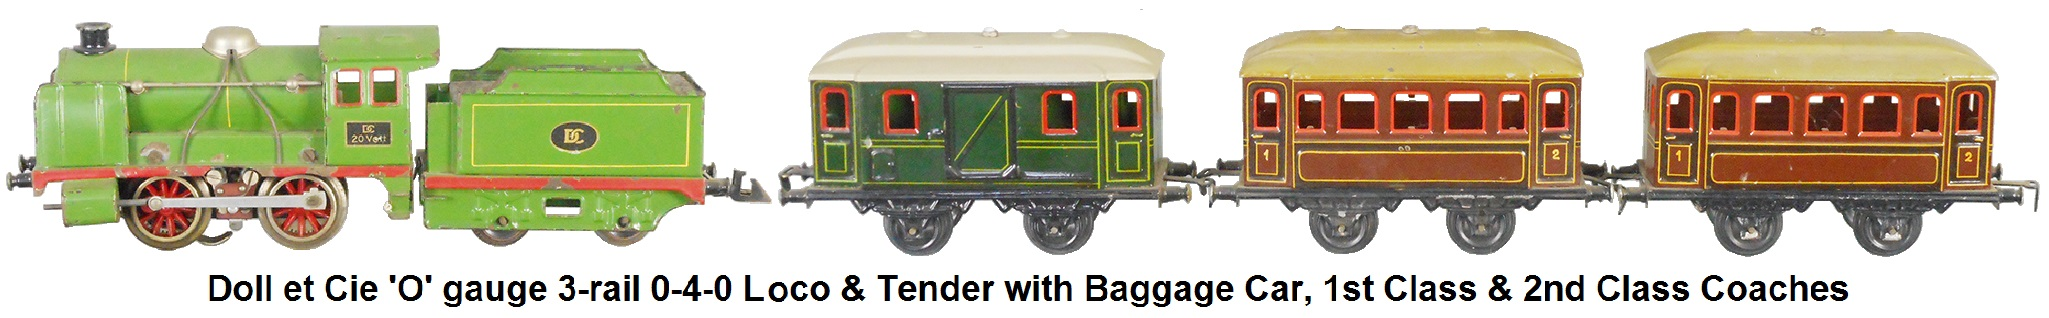 Doll et Cie. Tinplate 0-4-0 Loco and 4-wheel tender in 'O' gauge 3-rail electric with Baggage Car, 1st Class Coach and 2nd Class Coach